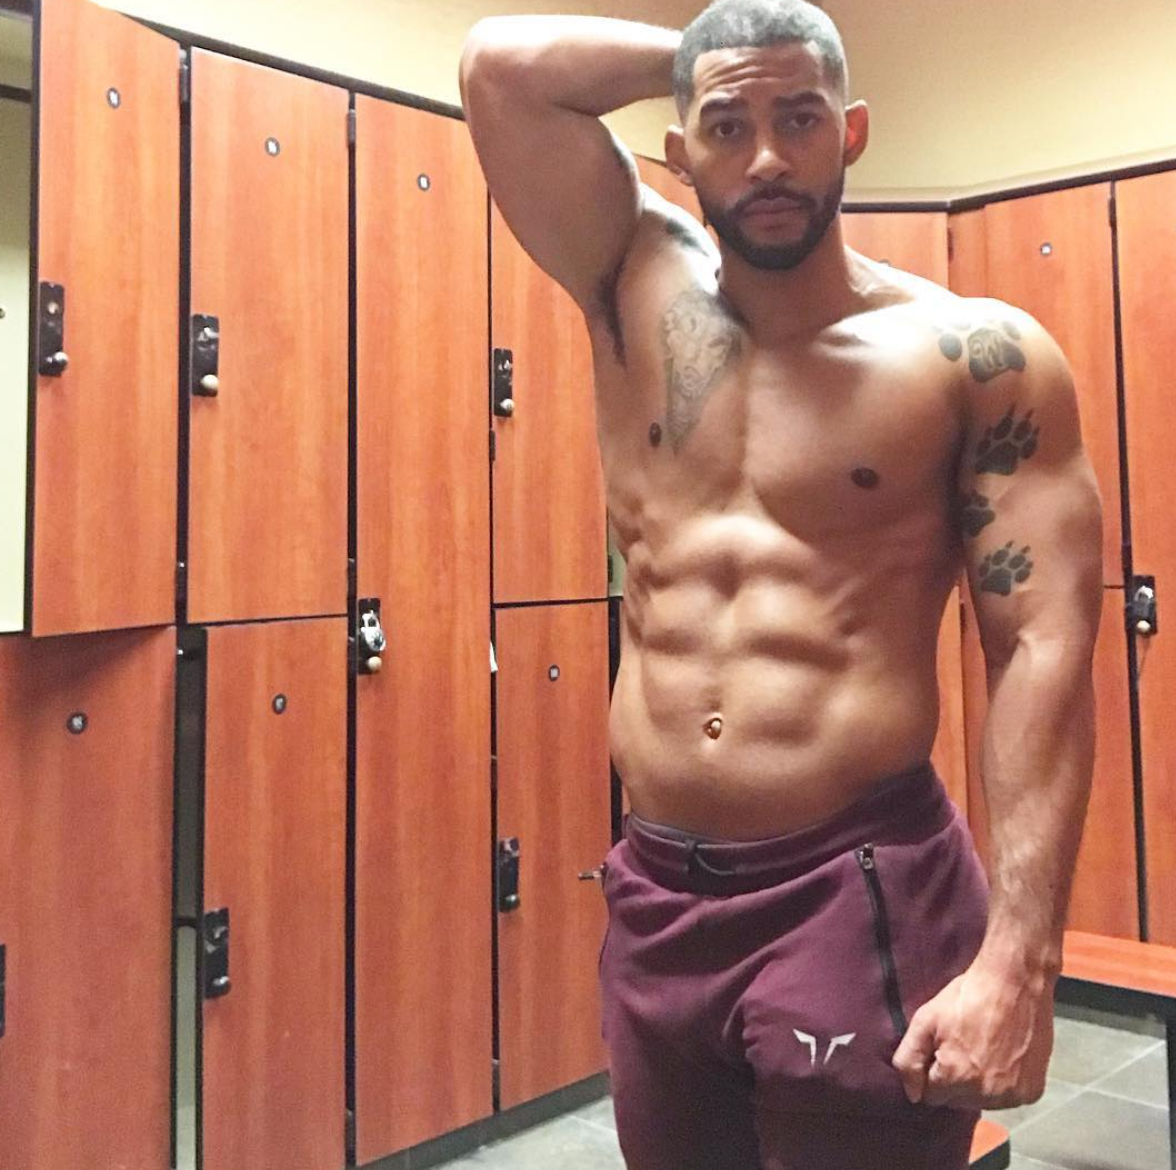 Troy woolfolk is on the dilf checklists with his ig